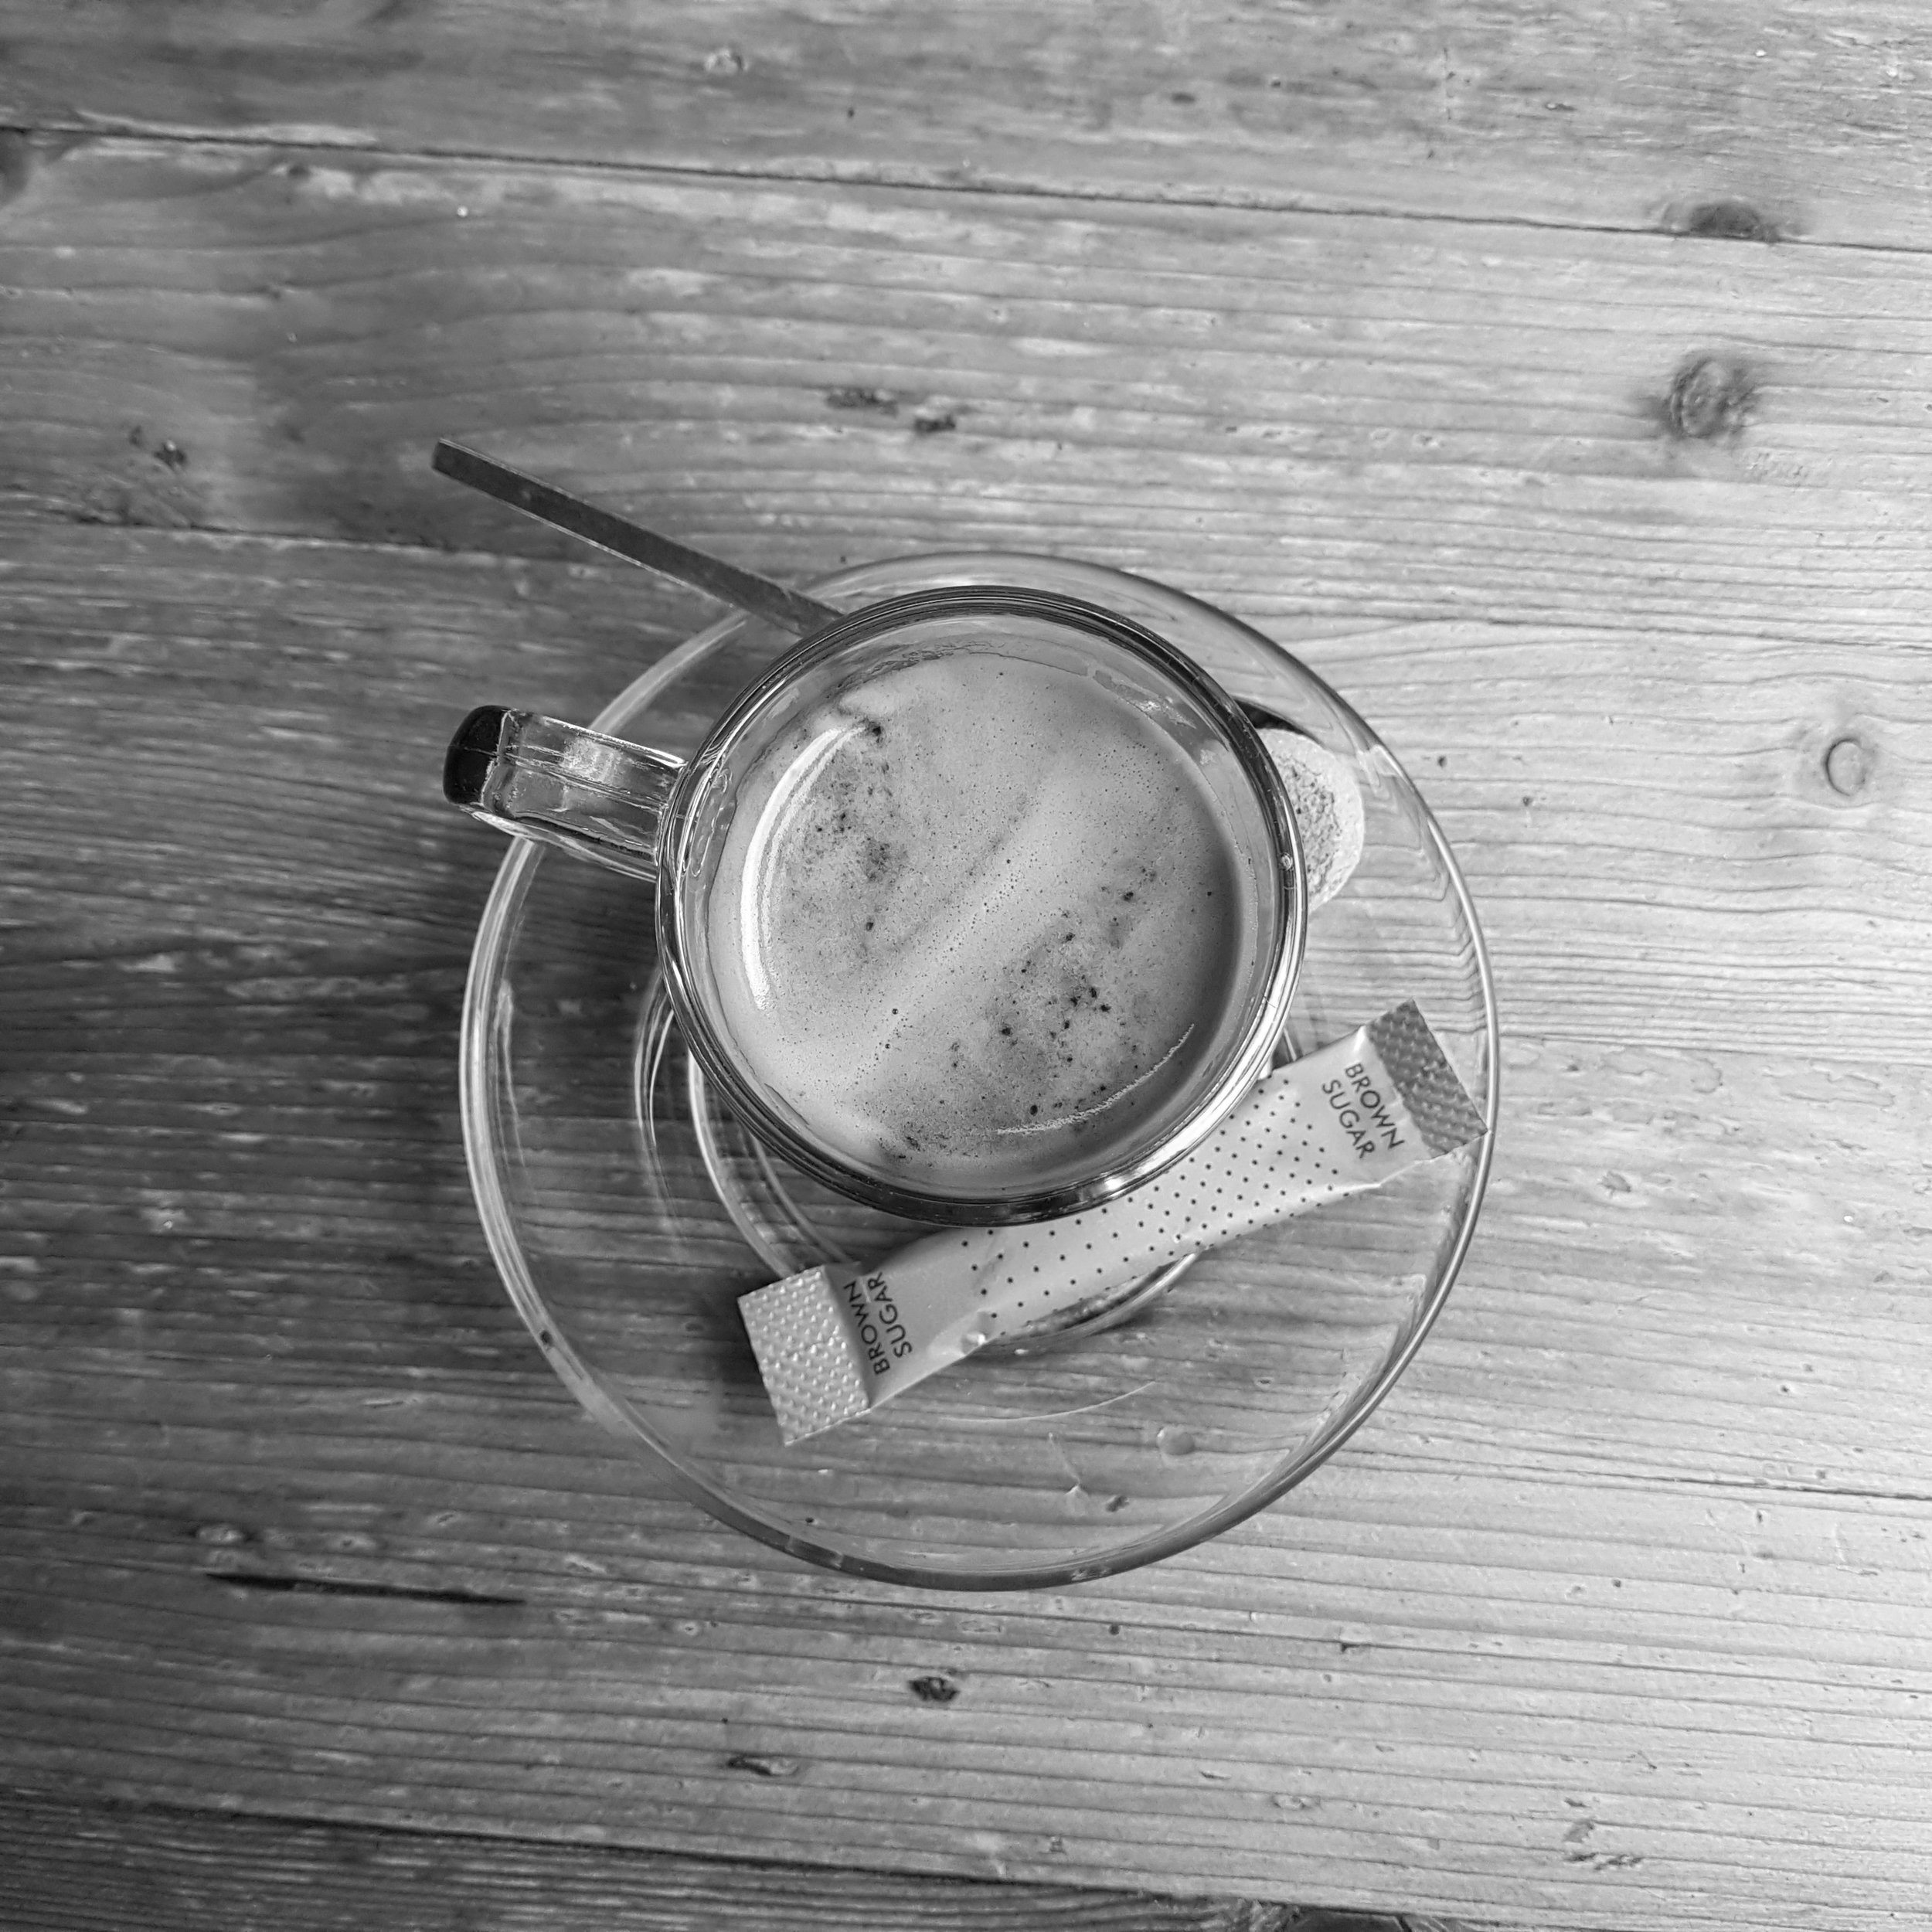 An espresso on a table